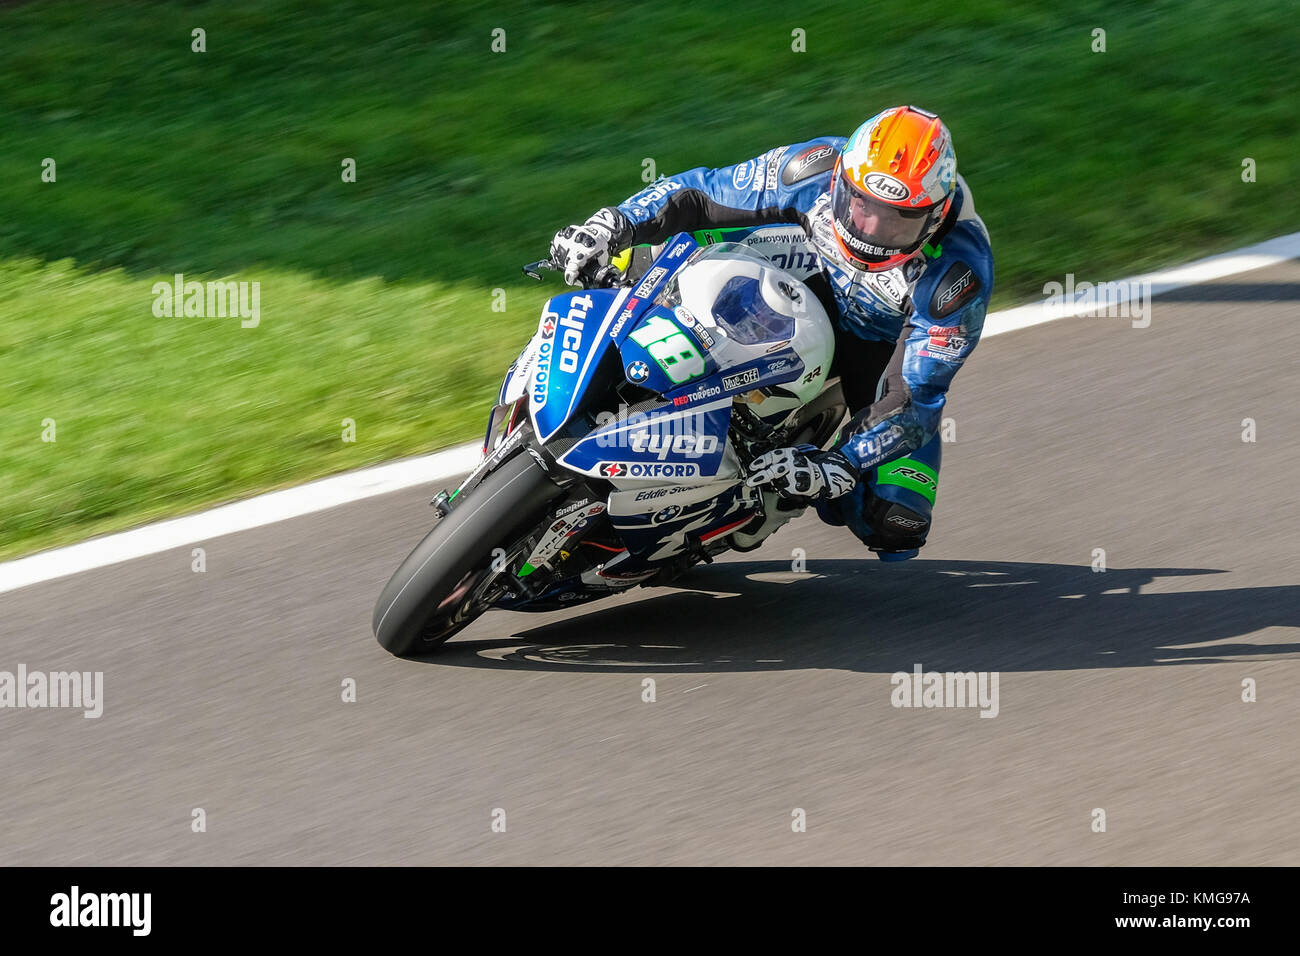 Round 8 of the British Superbikes Championship at Cadwell Park in Lincolnshire during August 2017 - Stock Image